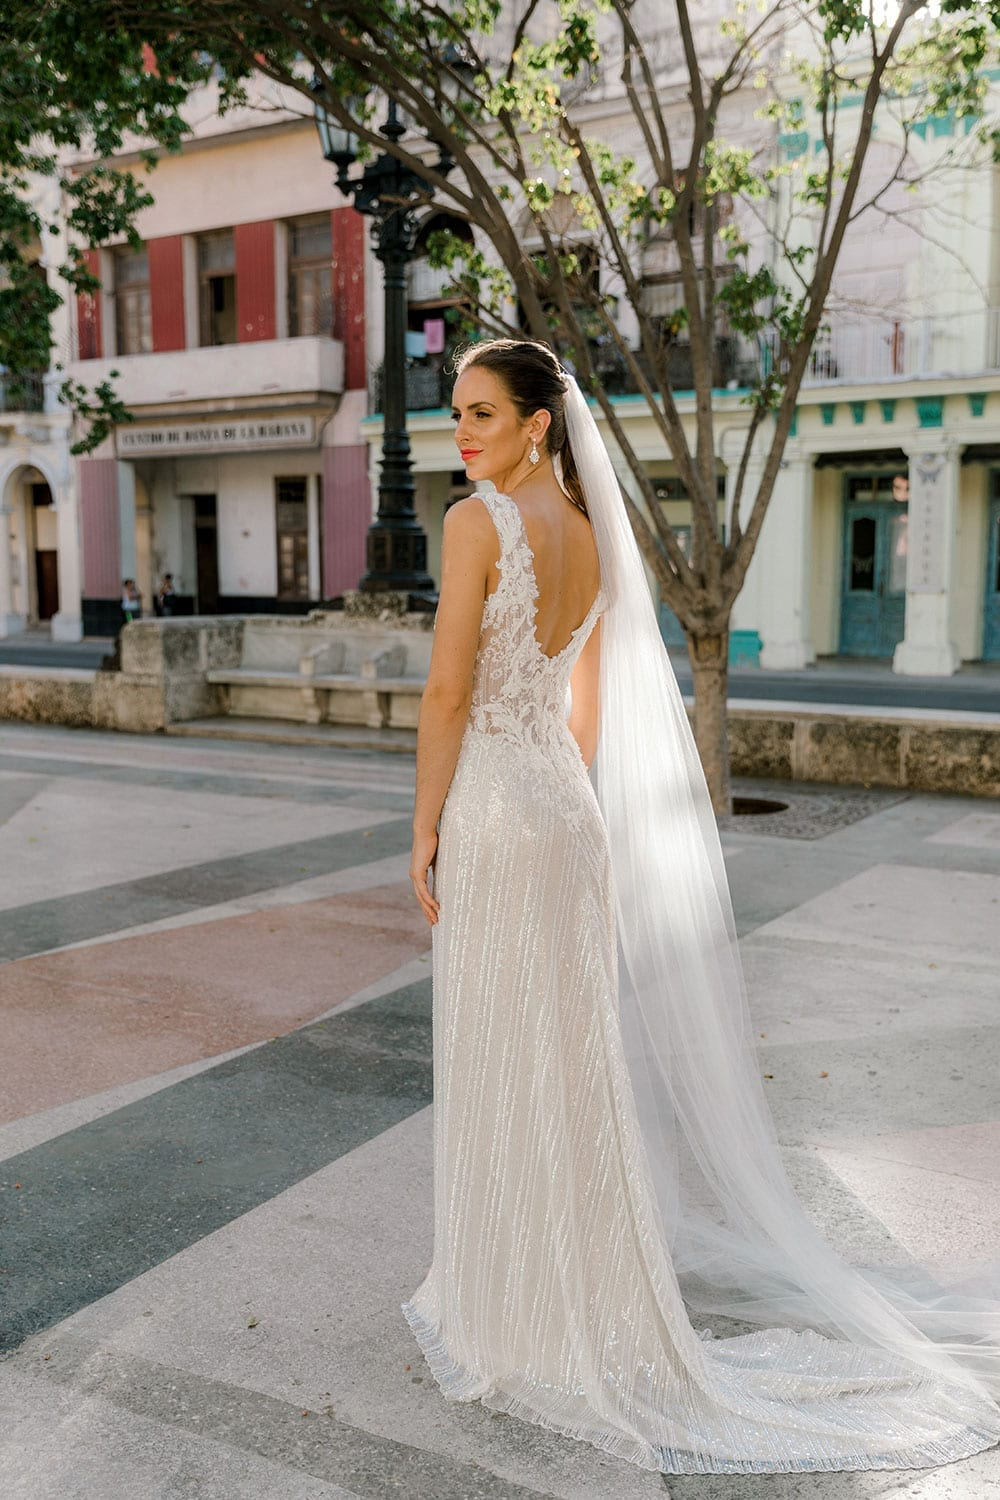 Model wearing Vinka Design Natalia Wedding Dress, a V-Neck Beaded Lace Wedding Gown showing dress from behind in a Cuban plaza